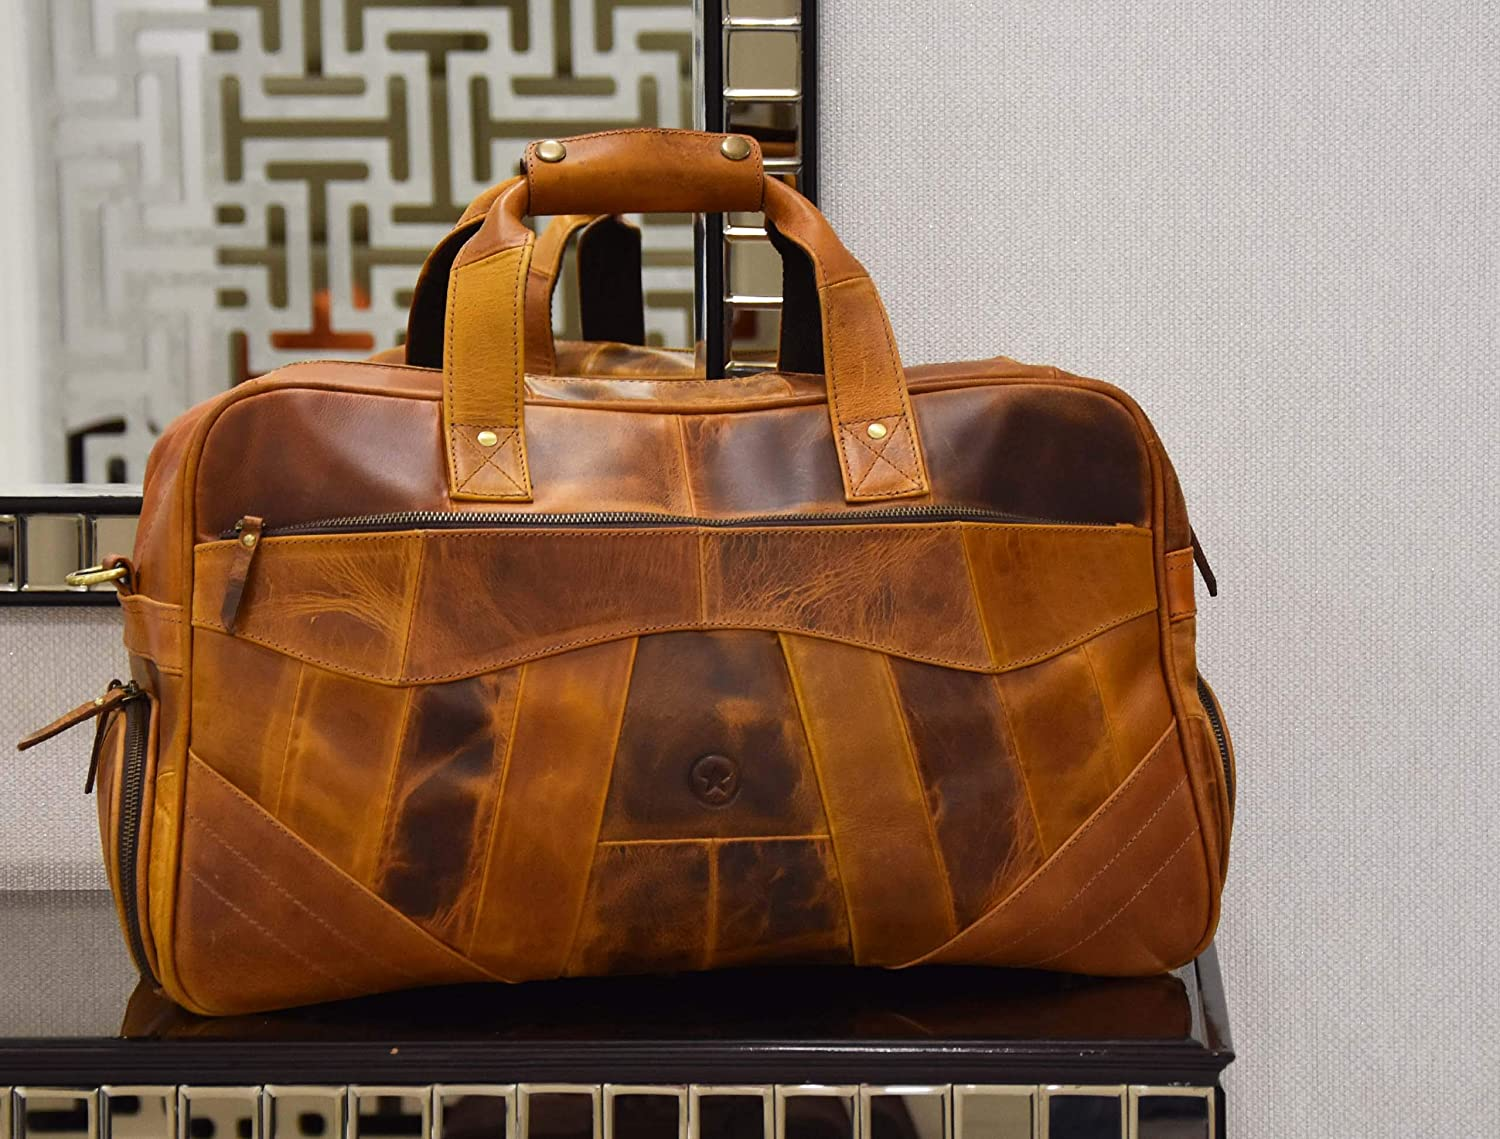 Caramel 19 Inch Leather Travel Duffle Bag For Men Overnight Weekend Luggage Carry On Duffel Bag